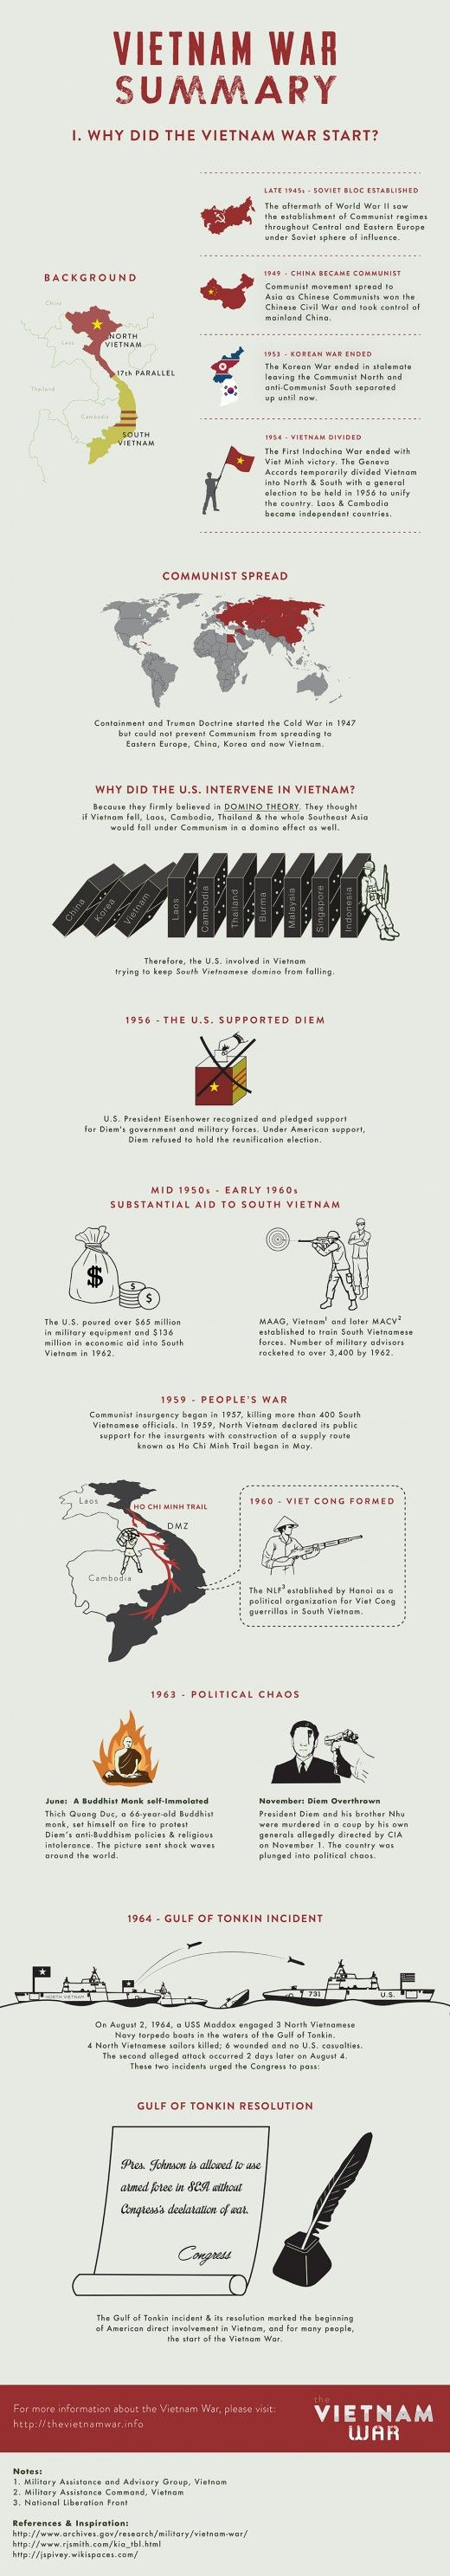 worksheet Vietnam War Worksheet 78 best vietnam war images on pinterest history south and in the first infographic about summary lets explore why started